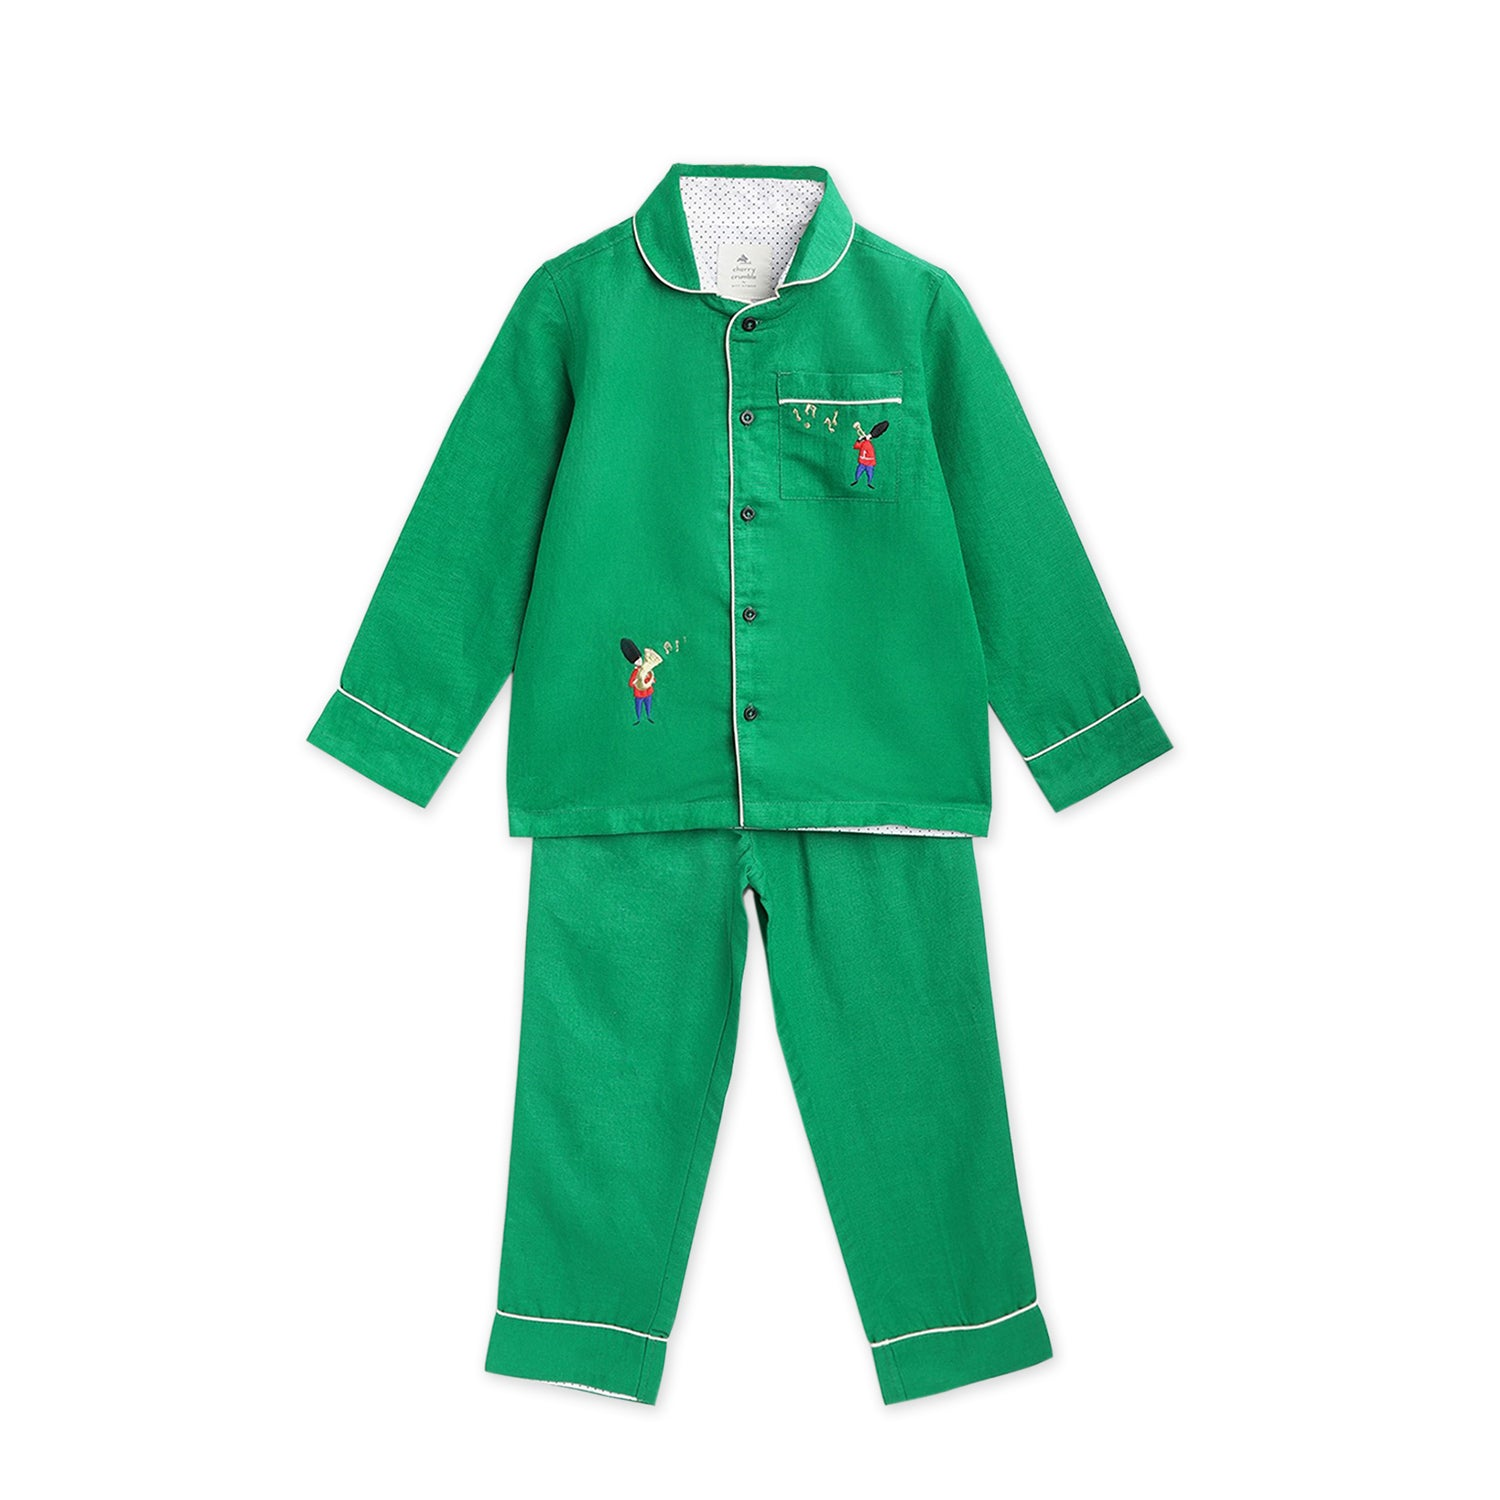 Cherry-Crumble-Kids-Full-Sleeve-Regular-Sleeve-Collared-Emroidered-Shirt-&-Pyjama-Nightsuit